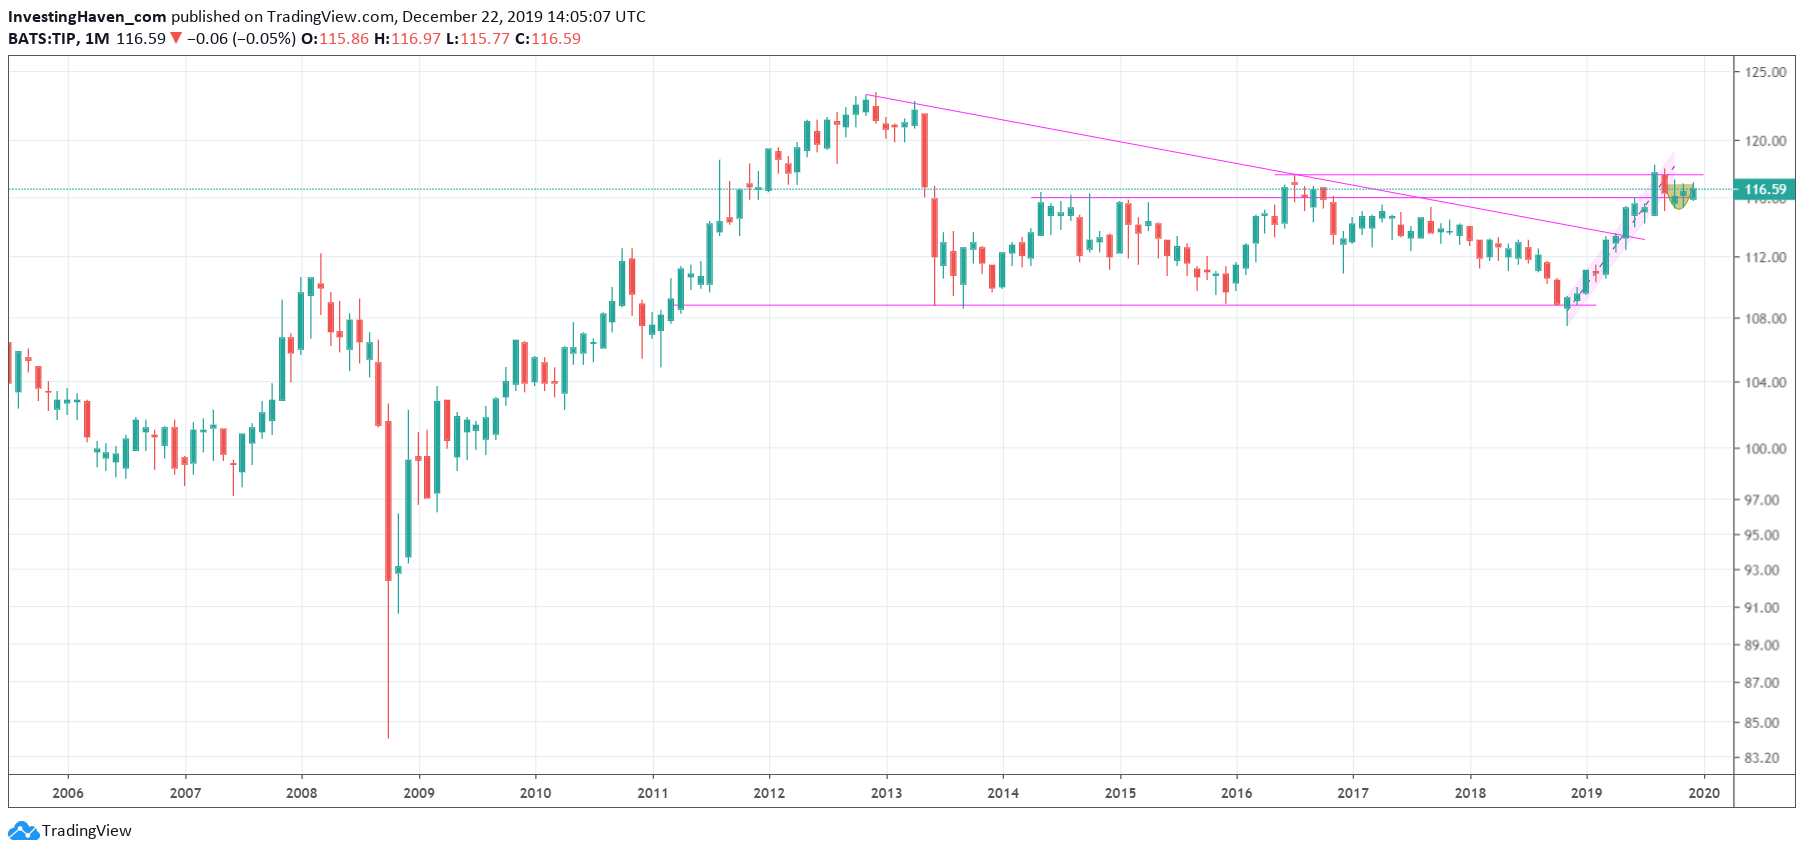 TIP ETF commodities outlook 2020